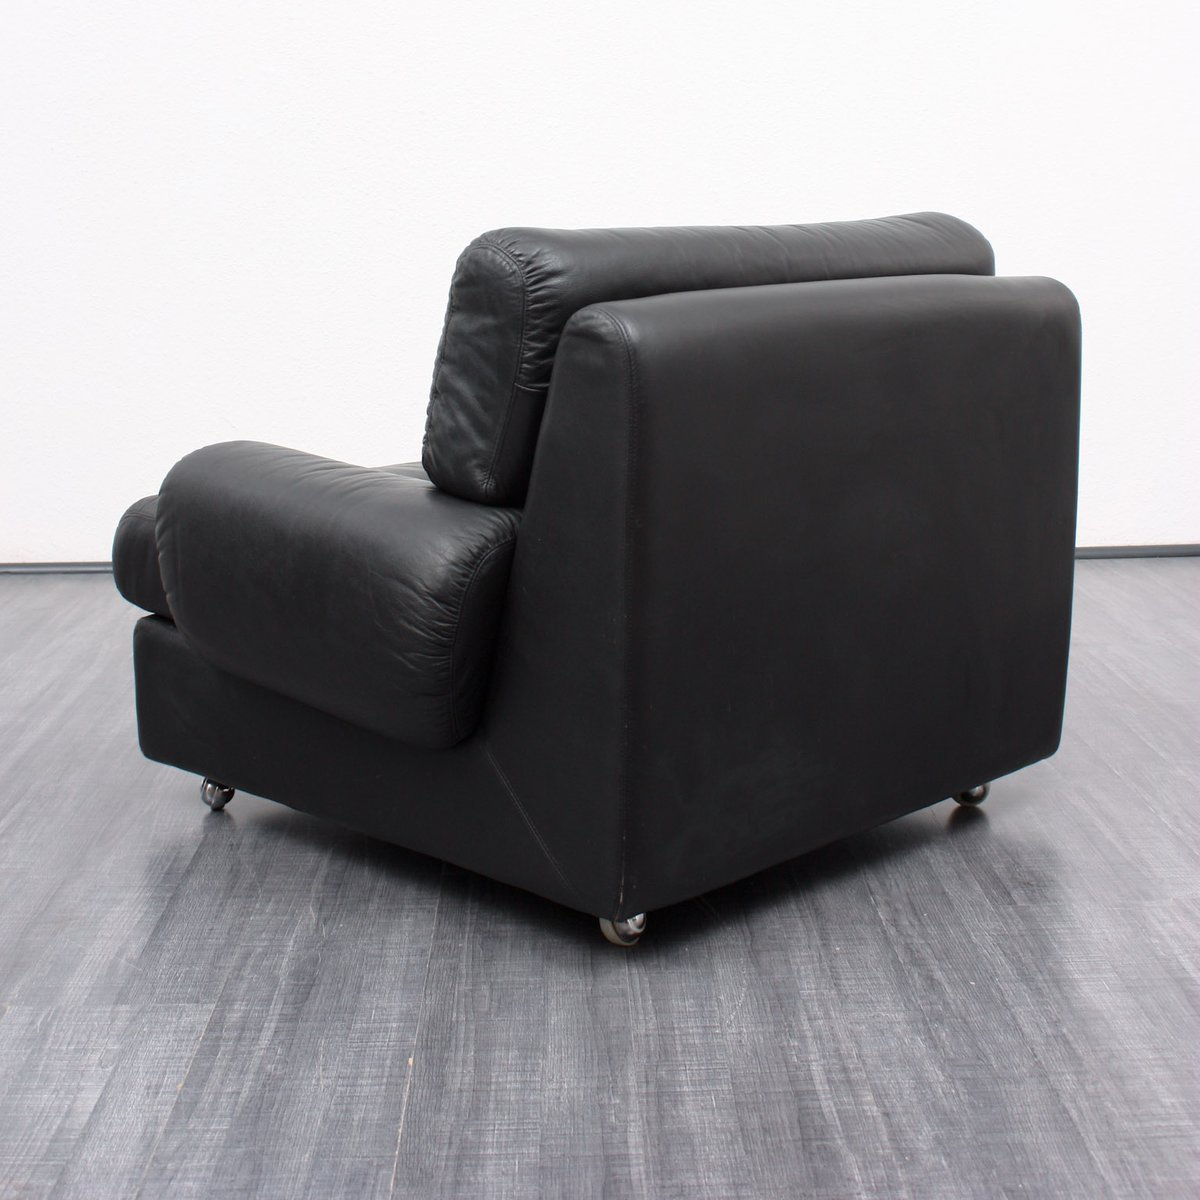 Vintage Black Leather Lounge Chair 1970s For Sale At Pamono